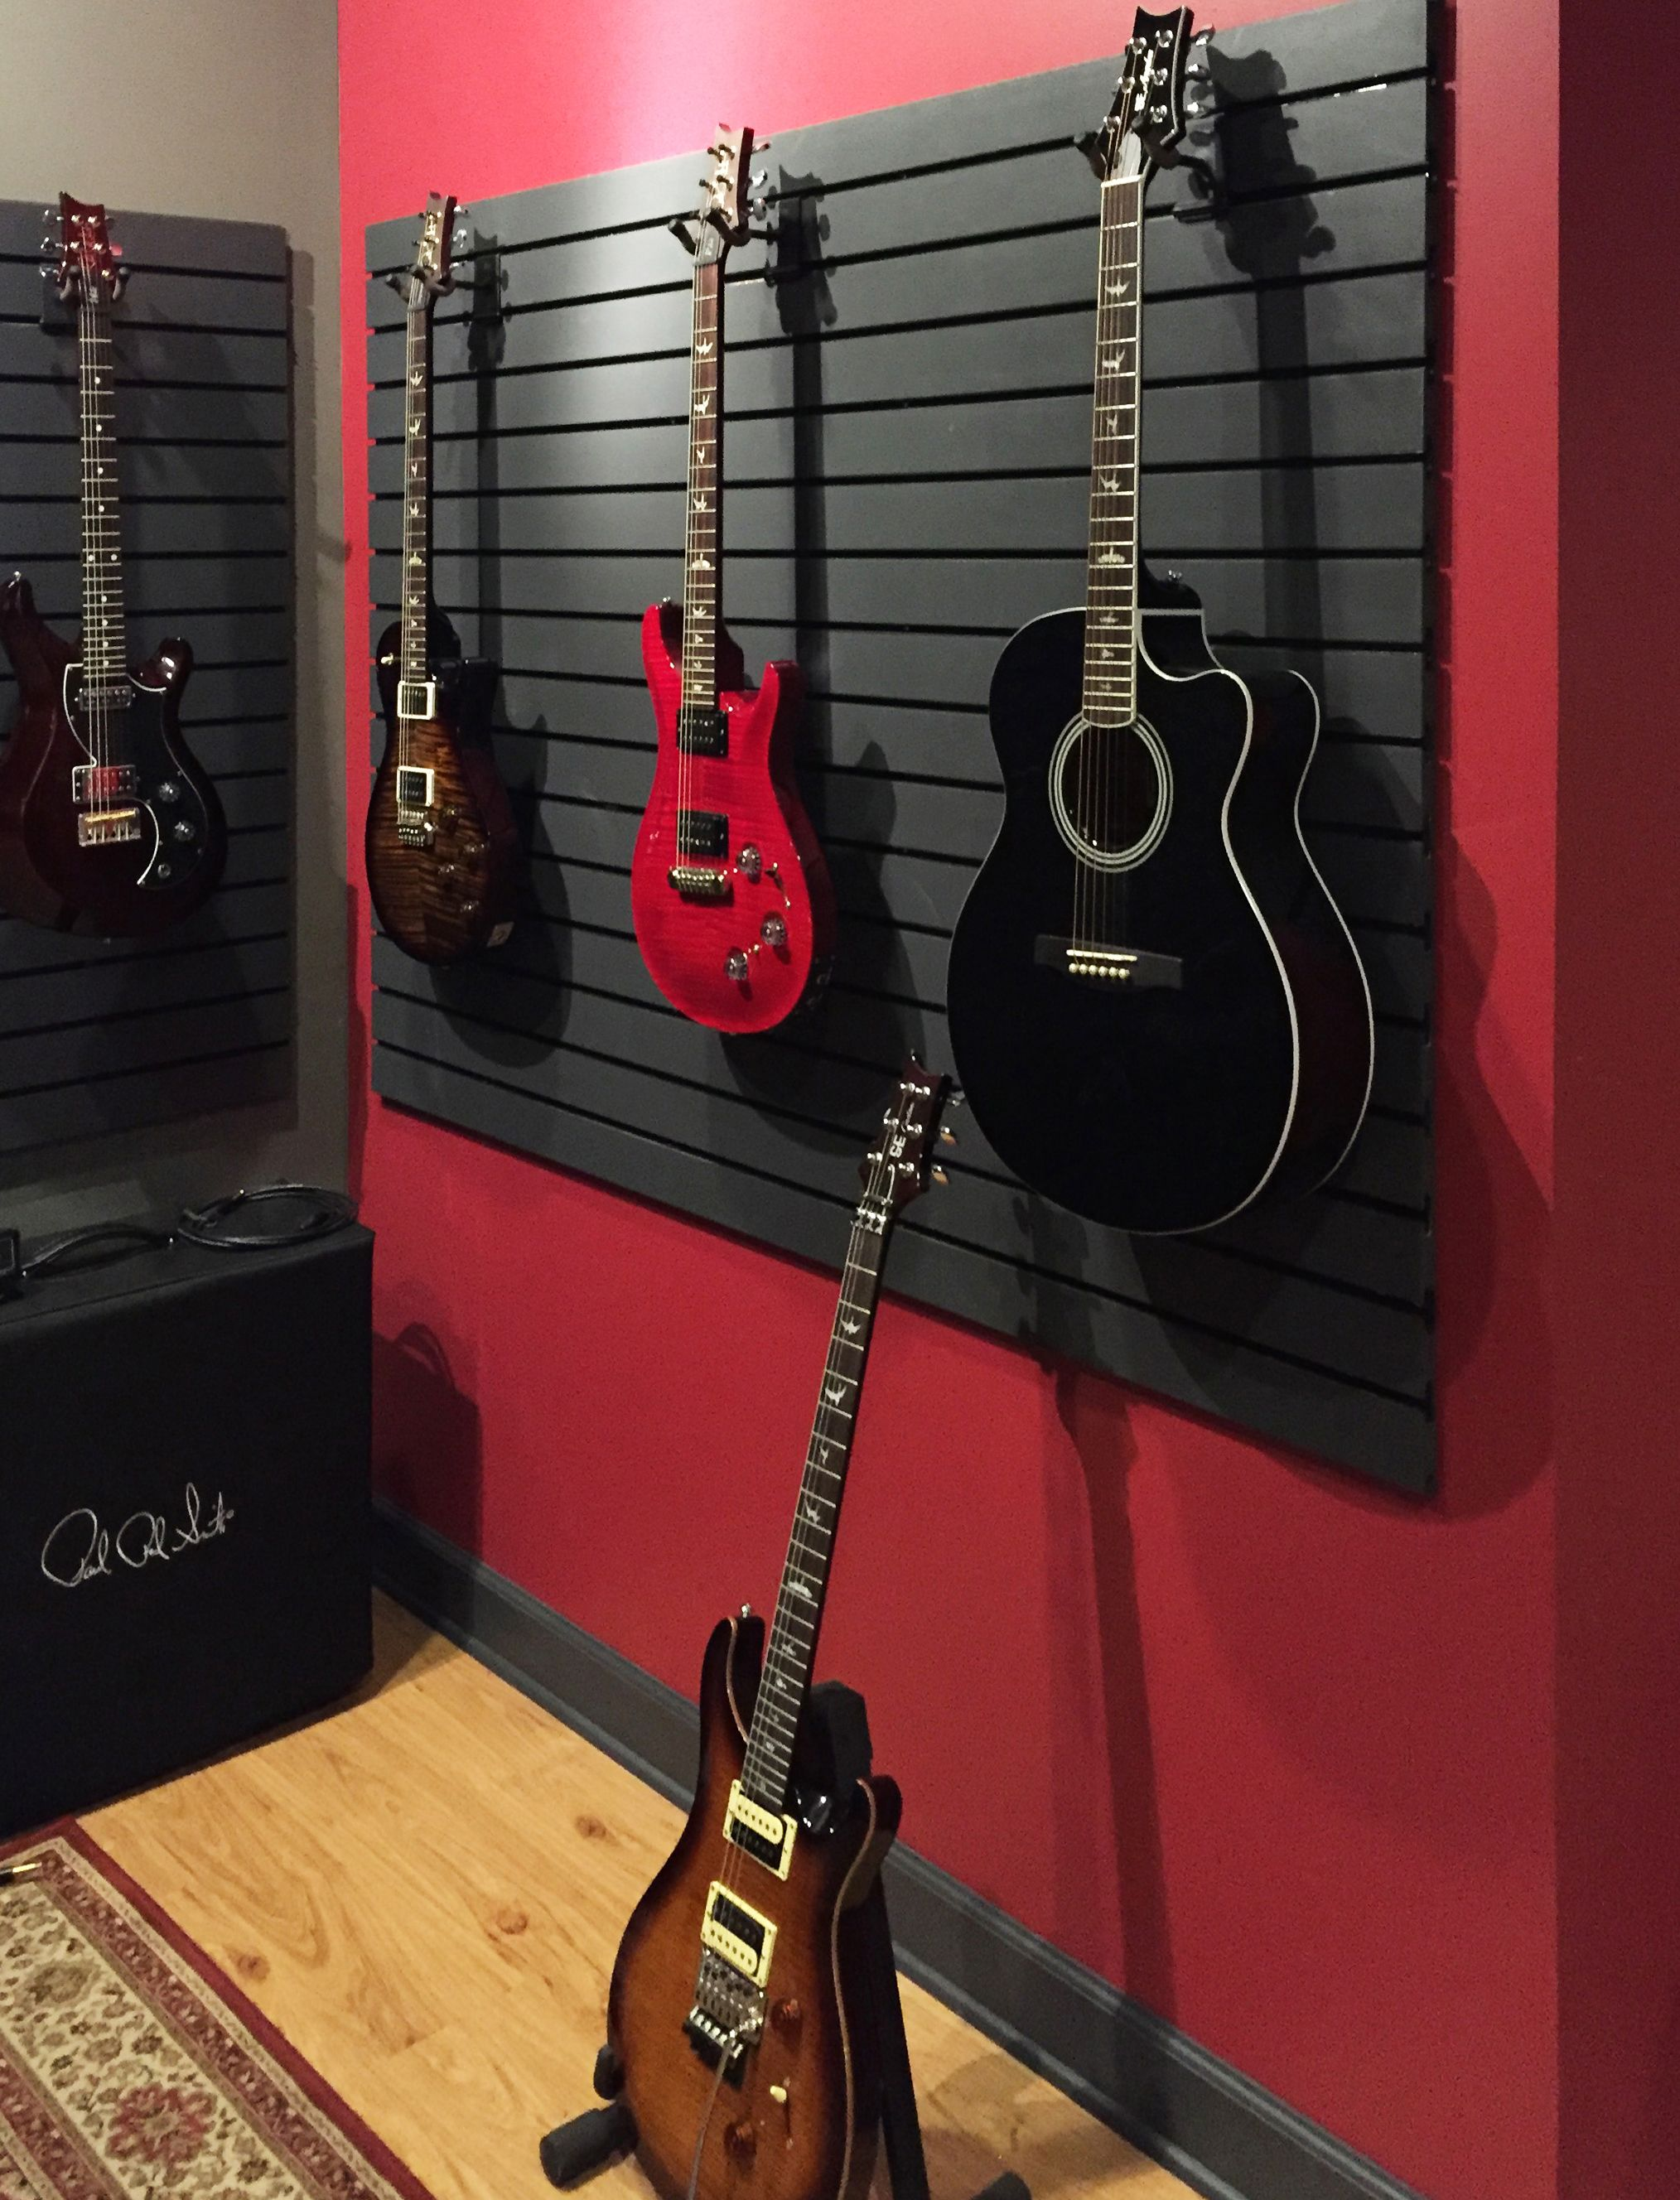 Guitar Hanging System Used In Home For Guitar Storage And